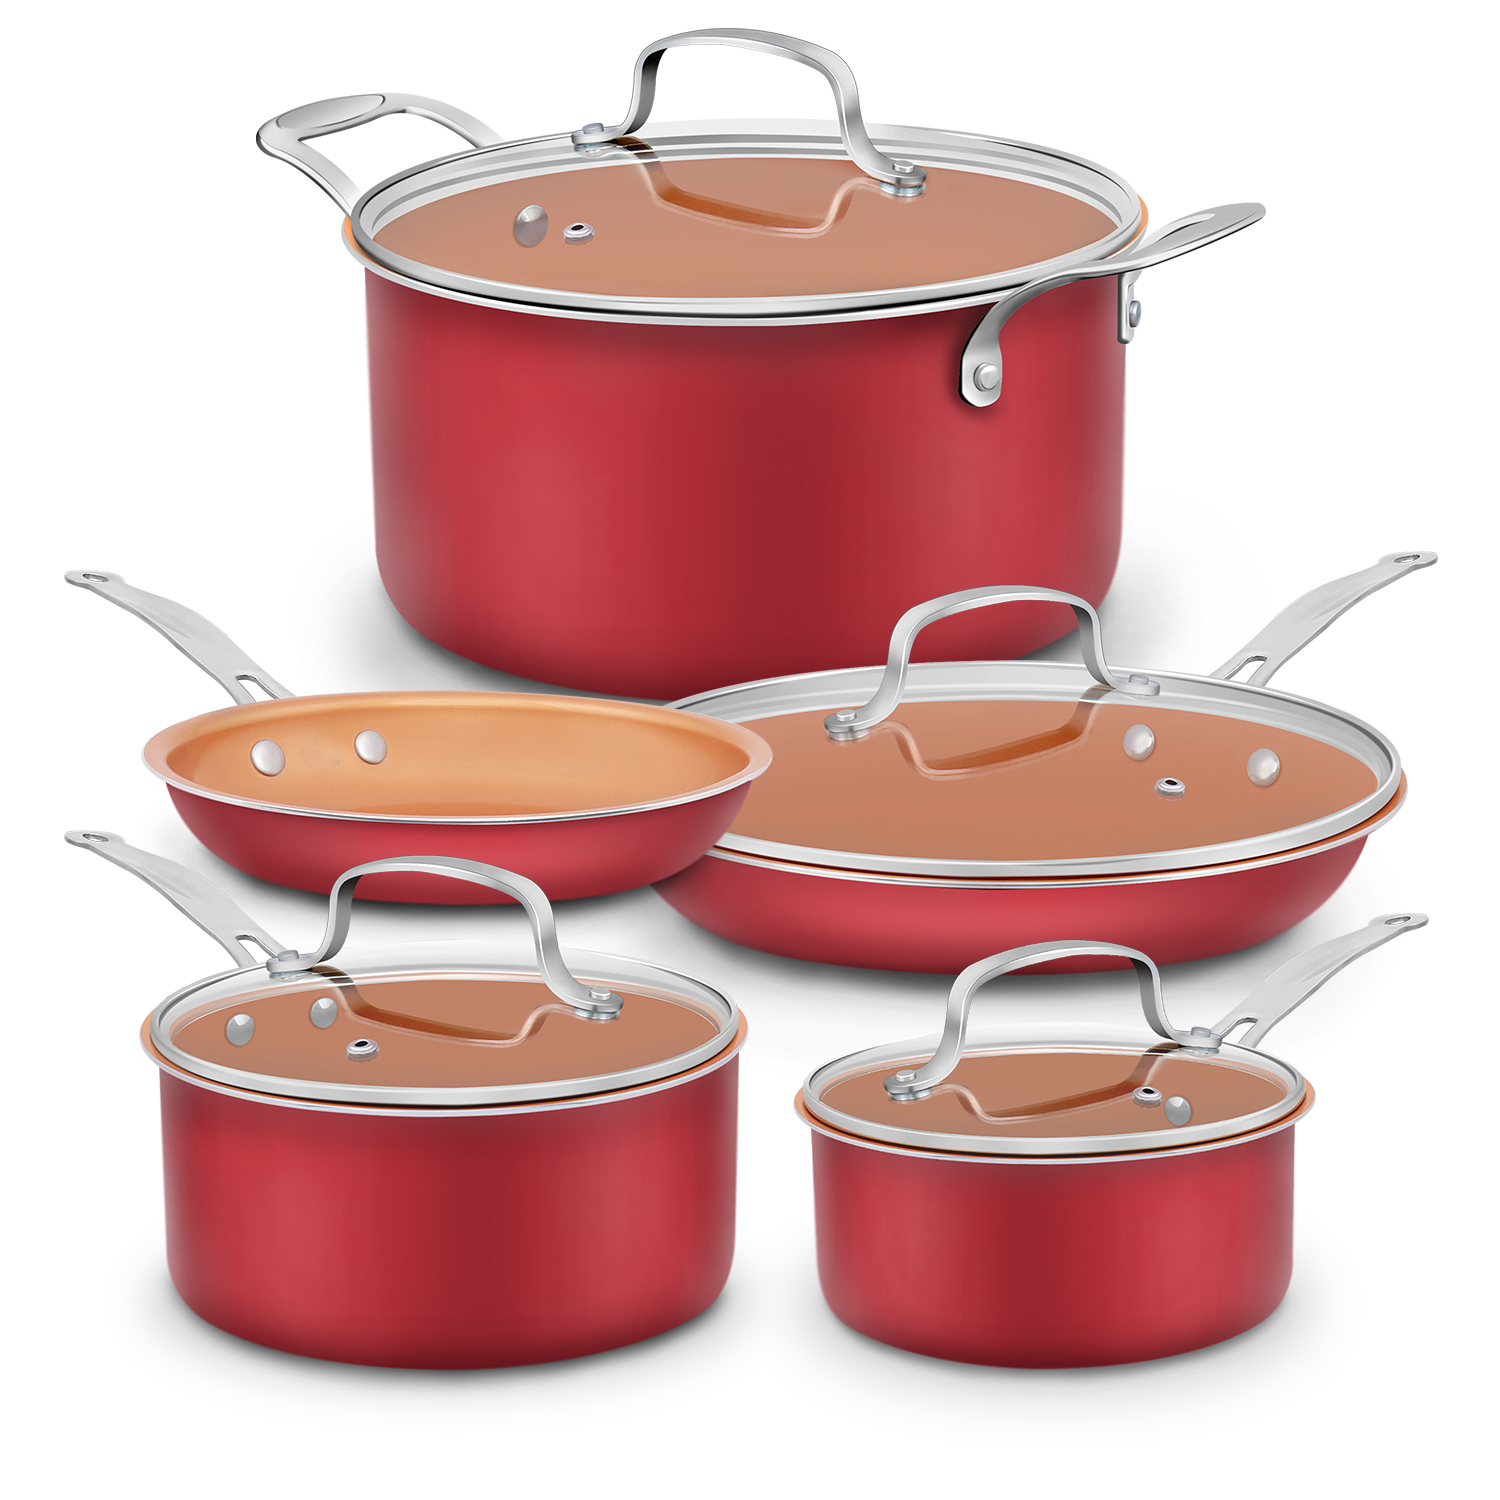 Aluminum-Infused Copper Ceramic Non-Stick Cookware Set with $10 Amazon Coupon